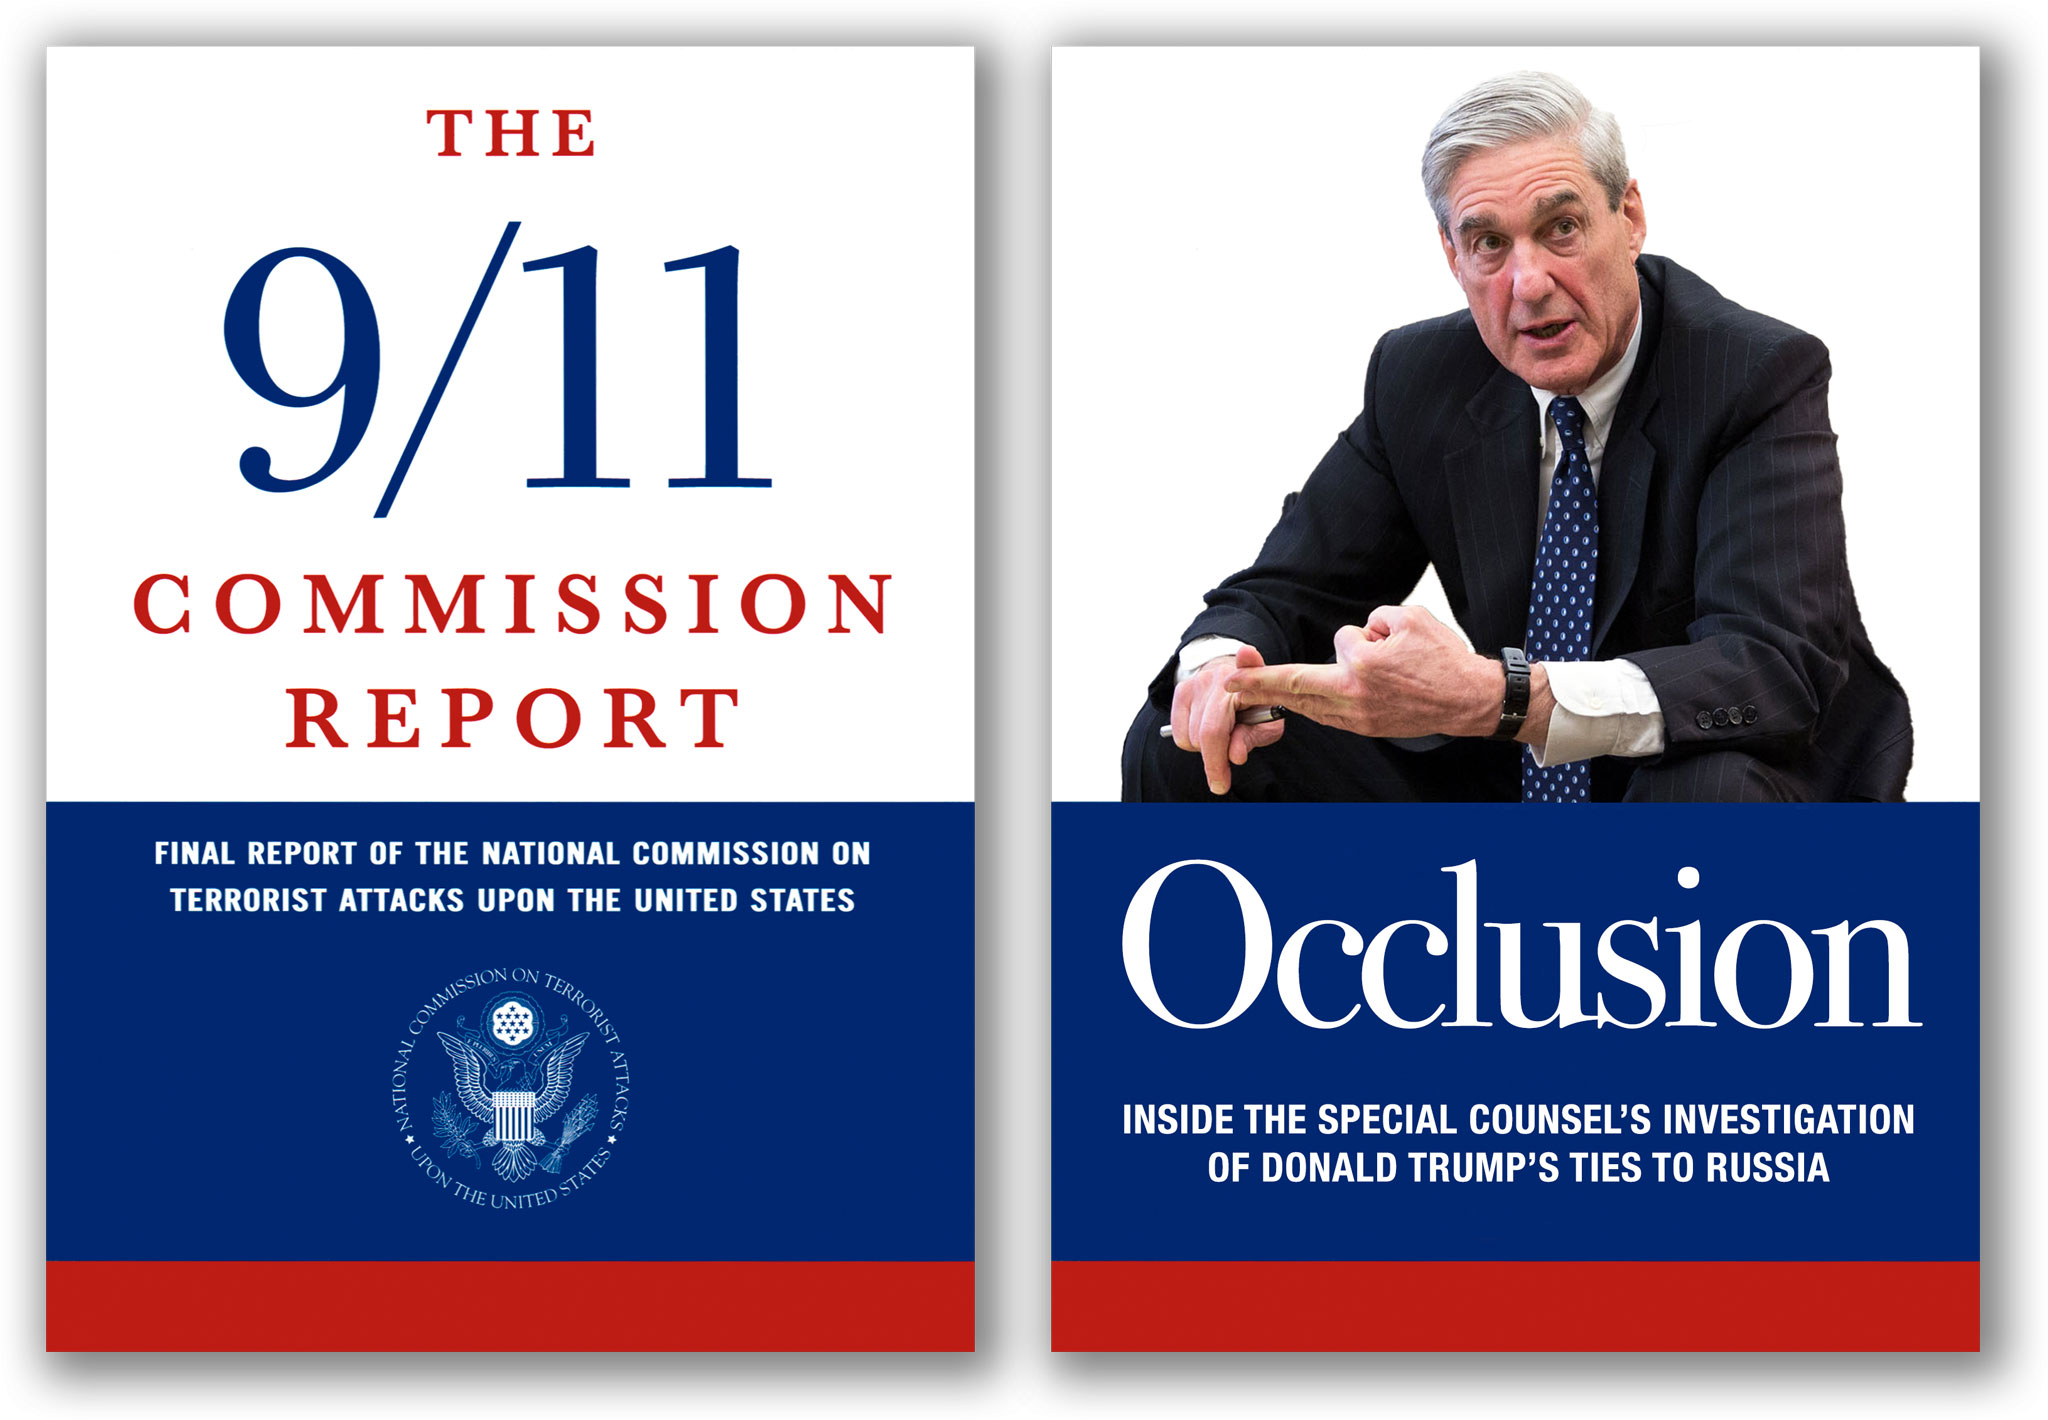 9/11 report and Mueller investigation book covers.